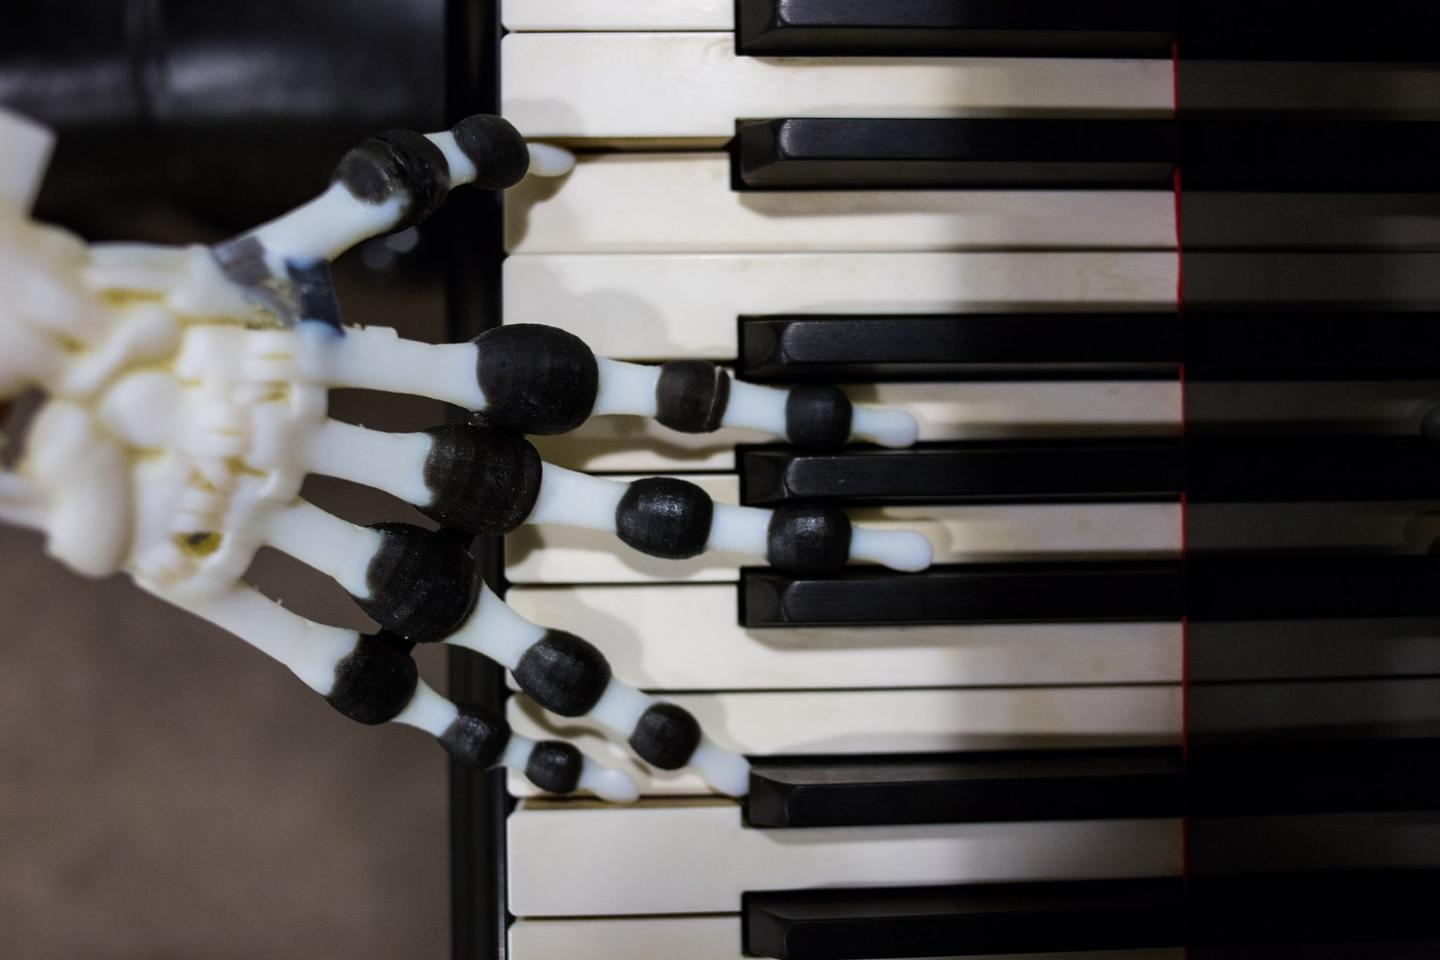 The soft robotic hand isn't going to win any piano playing competitions, but the researchers say that it could lead to the design of robots capable of more natural movement while cutting back on energy use